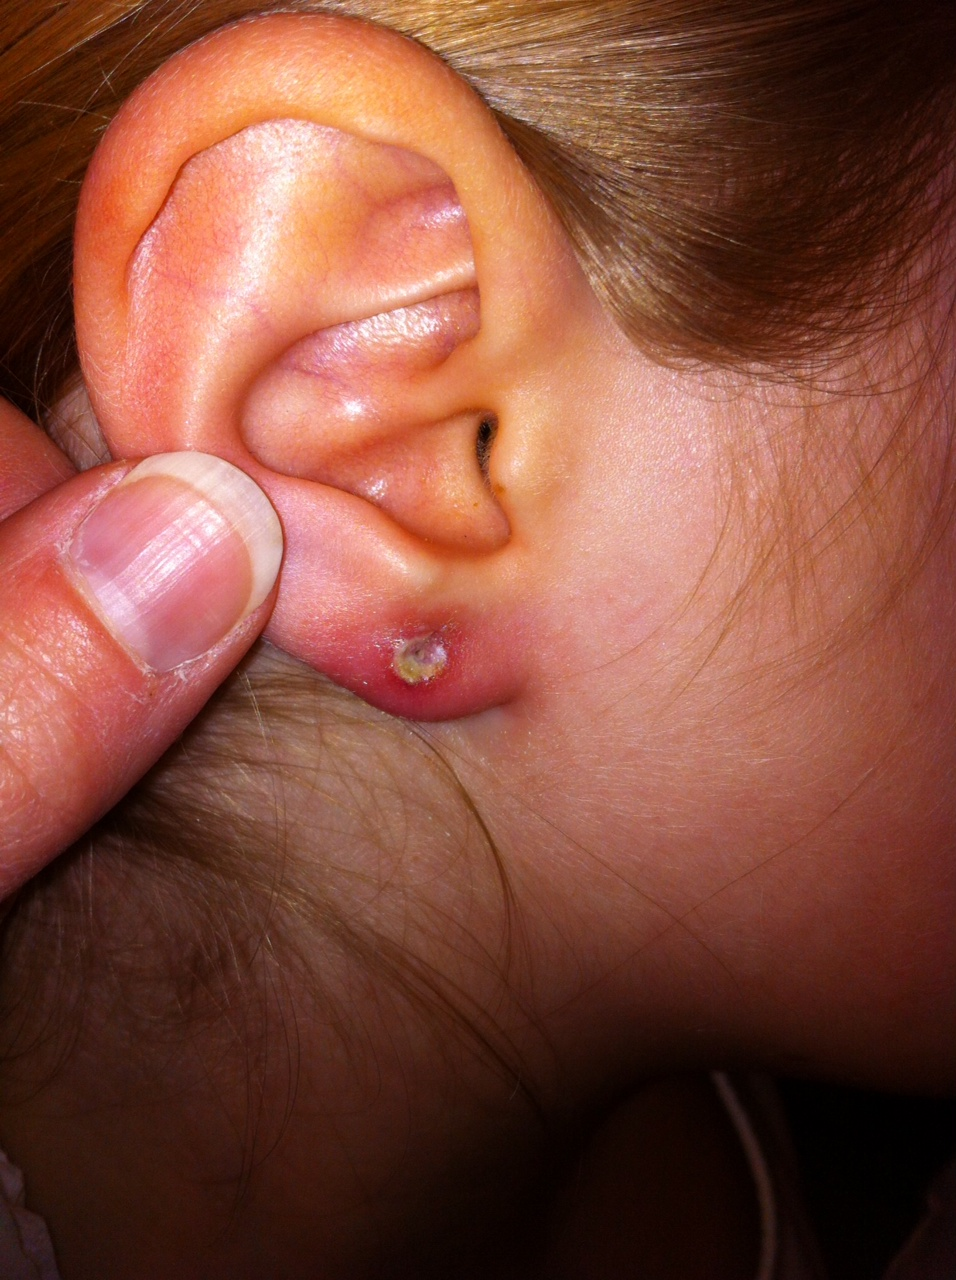 boys ear piercing both ears hairstylegalleries